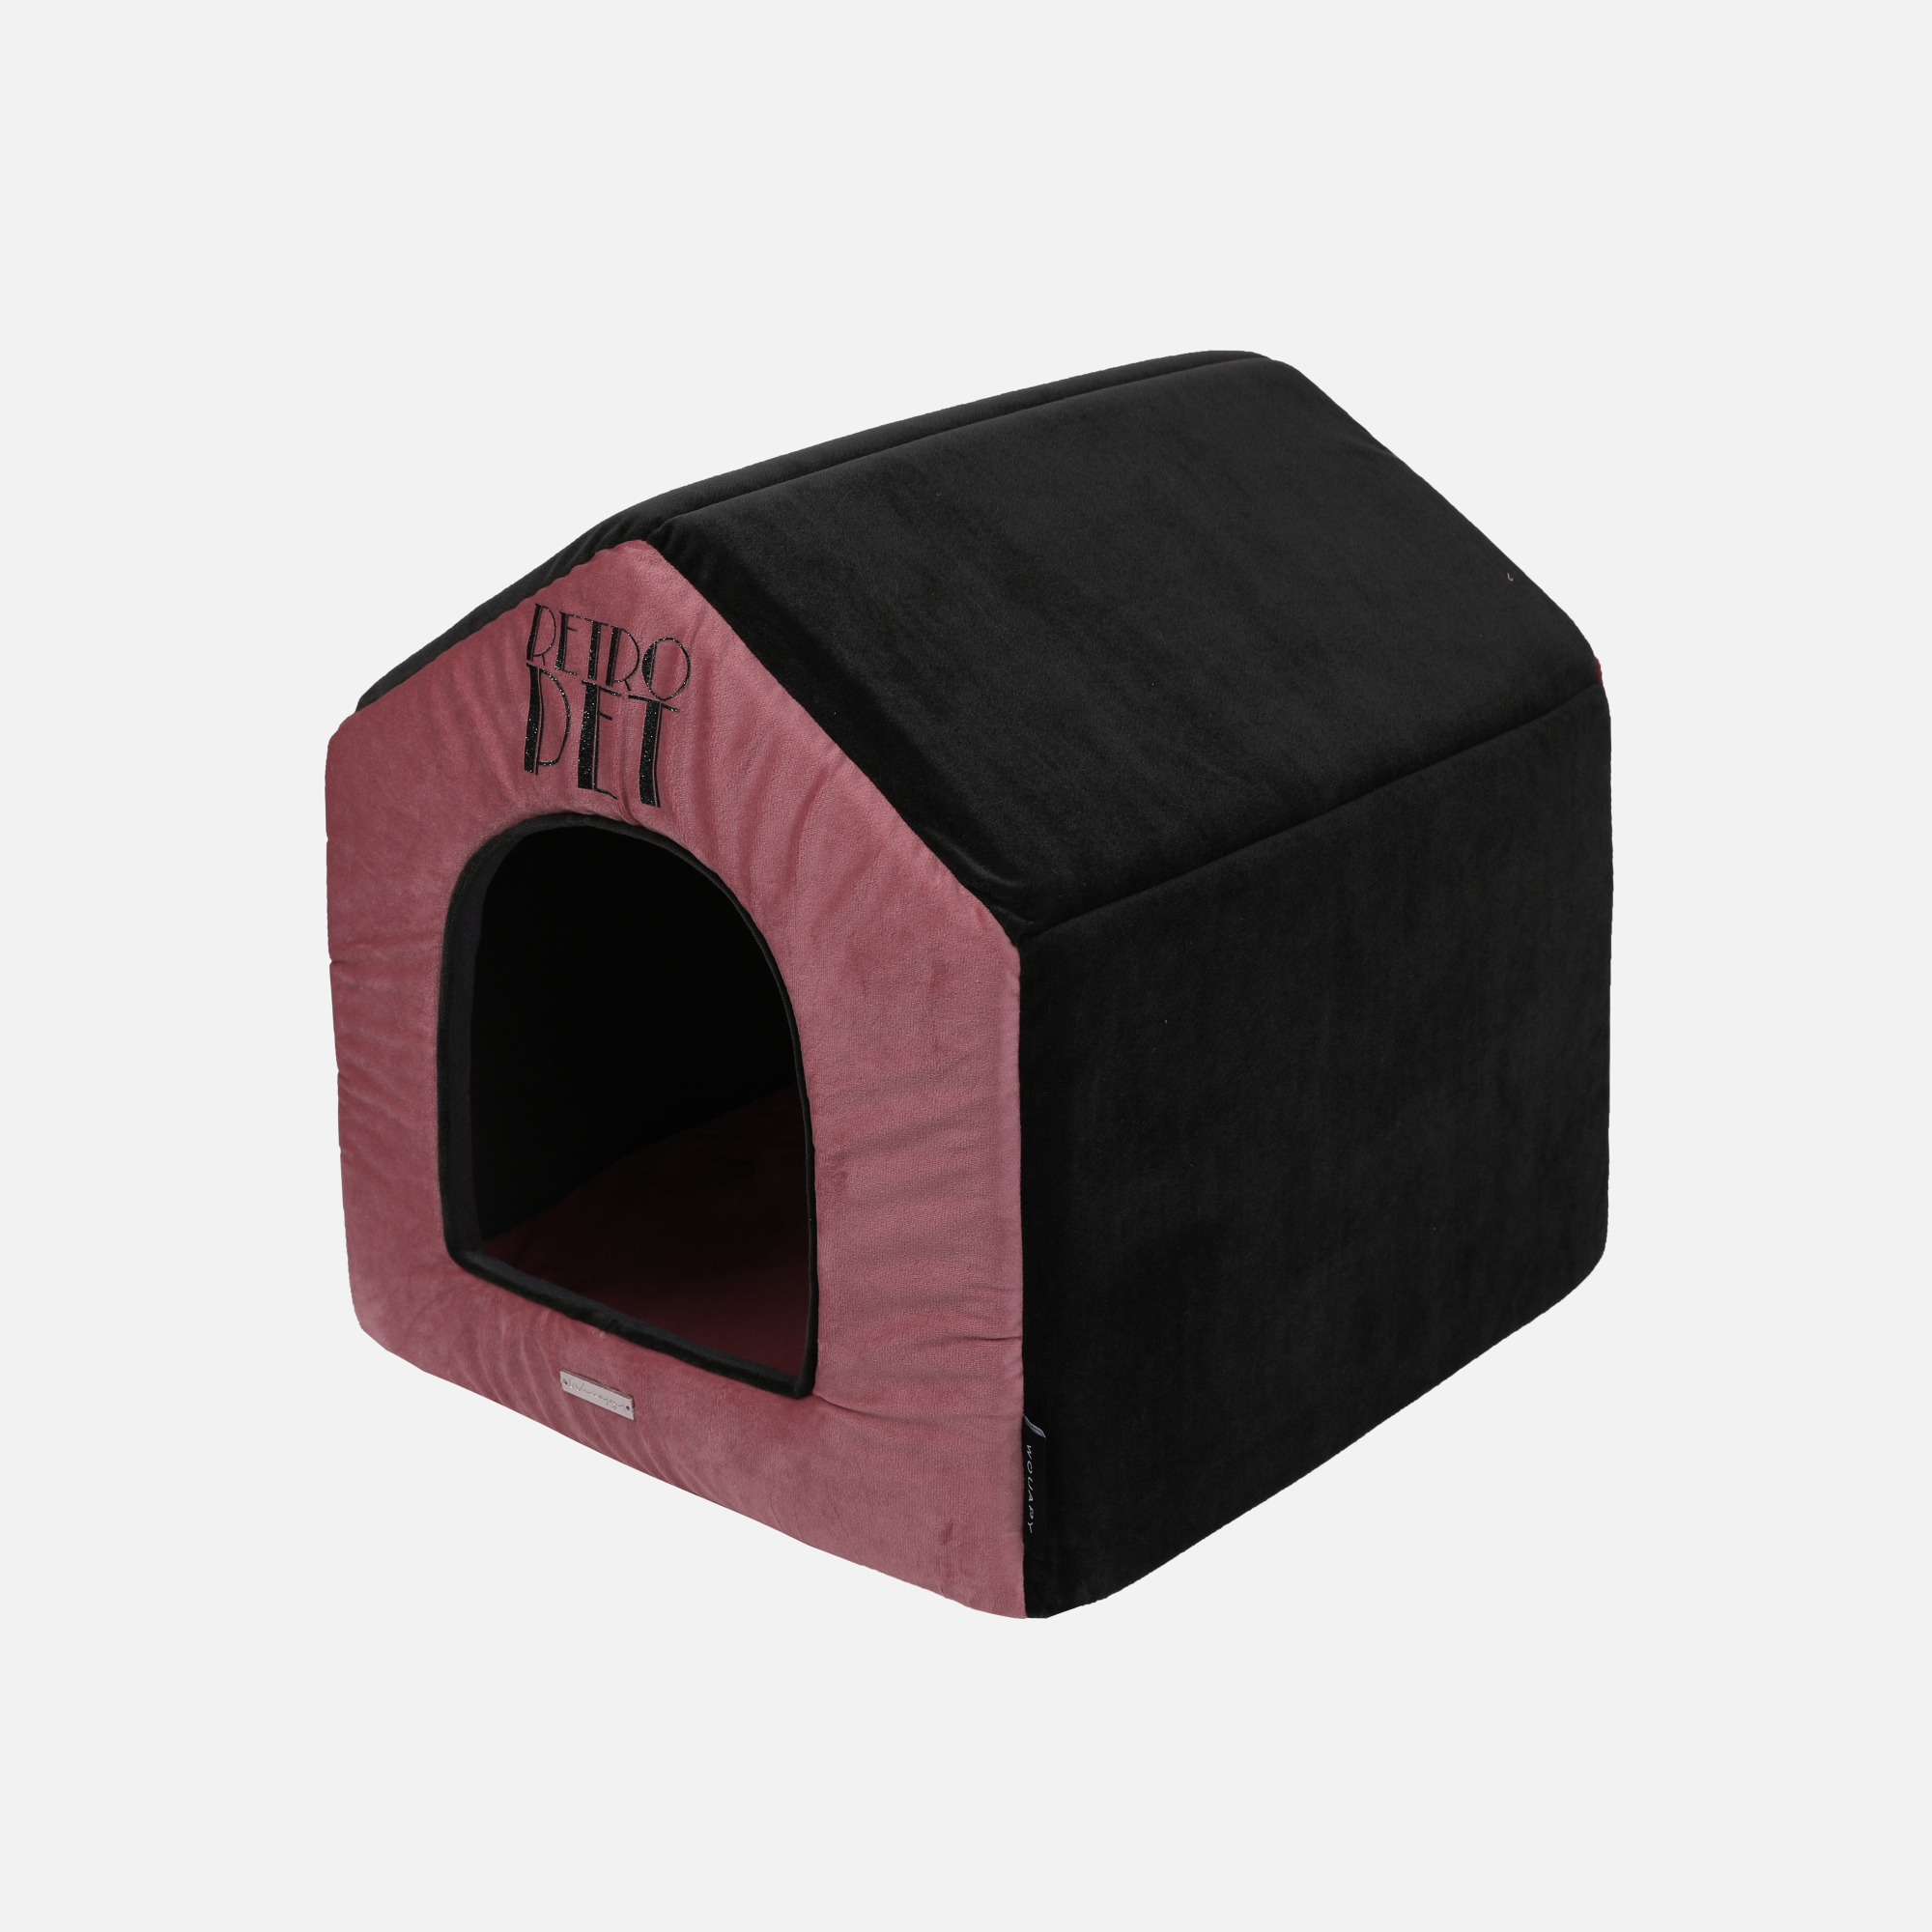 Maison Chat Retro Pet par Wouapy